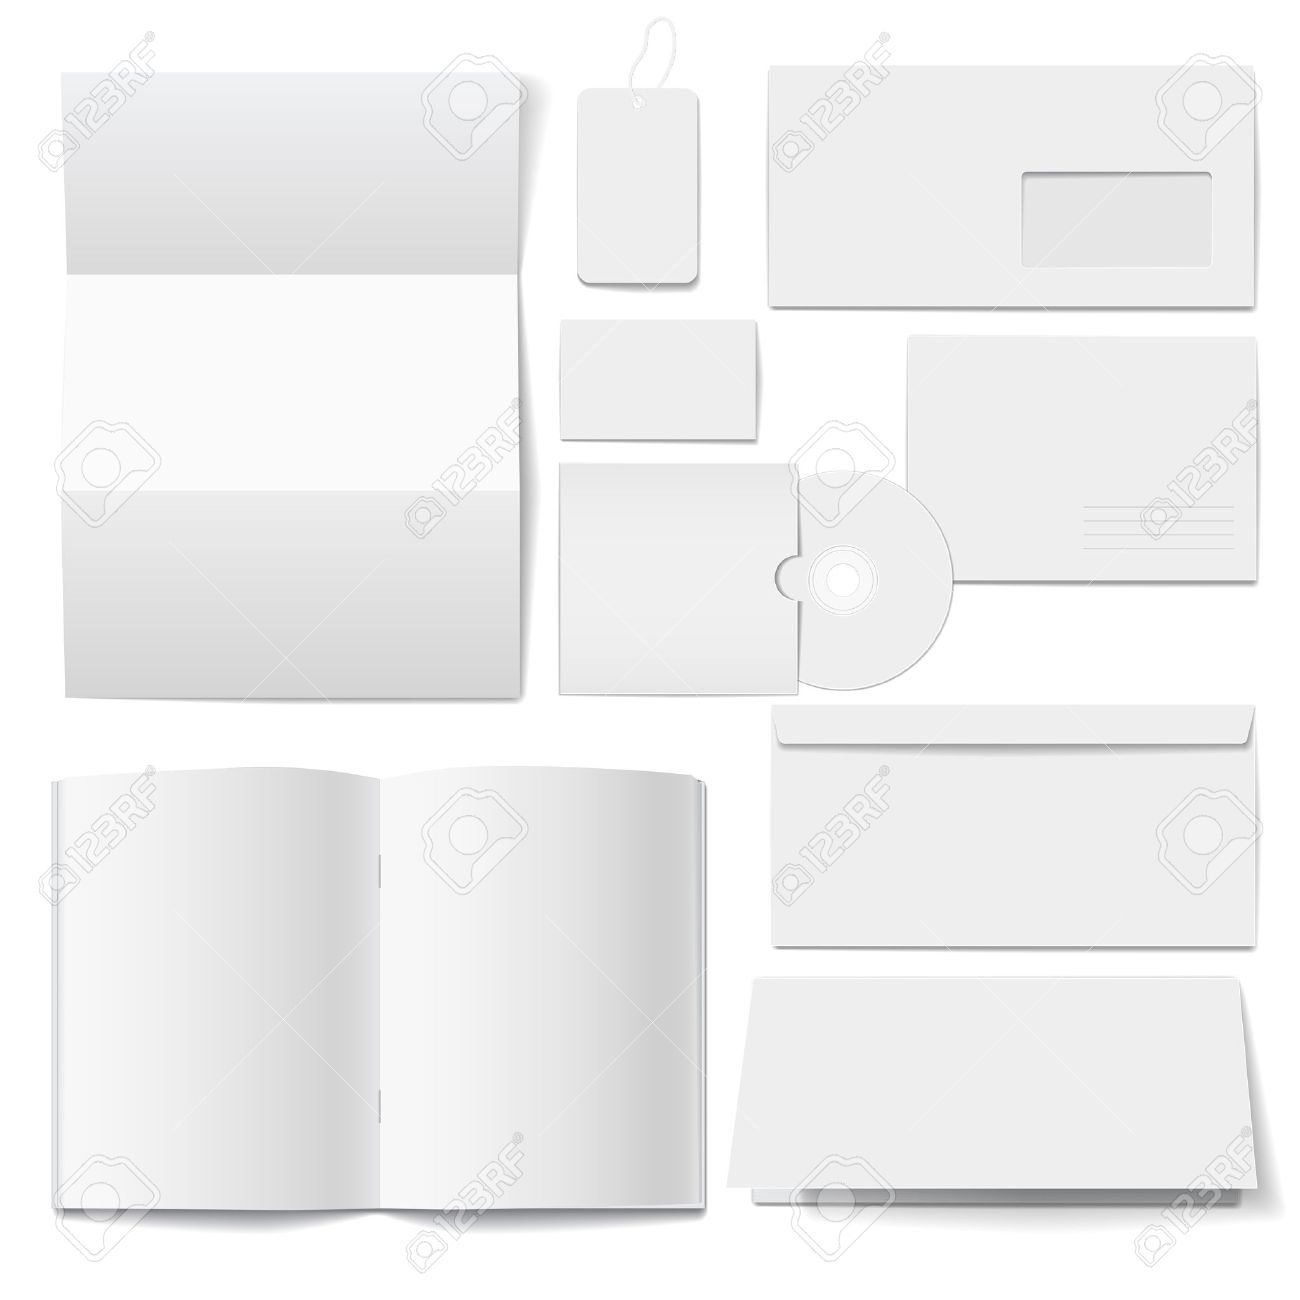 Corporate Identity Templates Selected Blank Royalty Free Cliparts ...